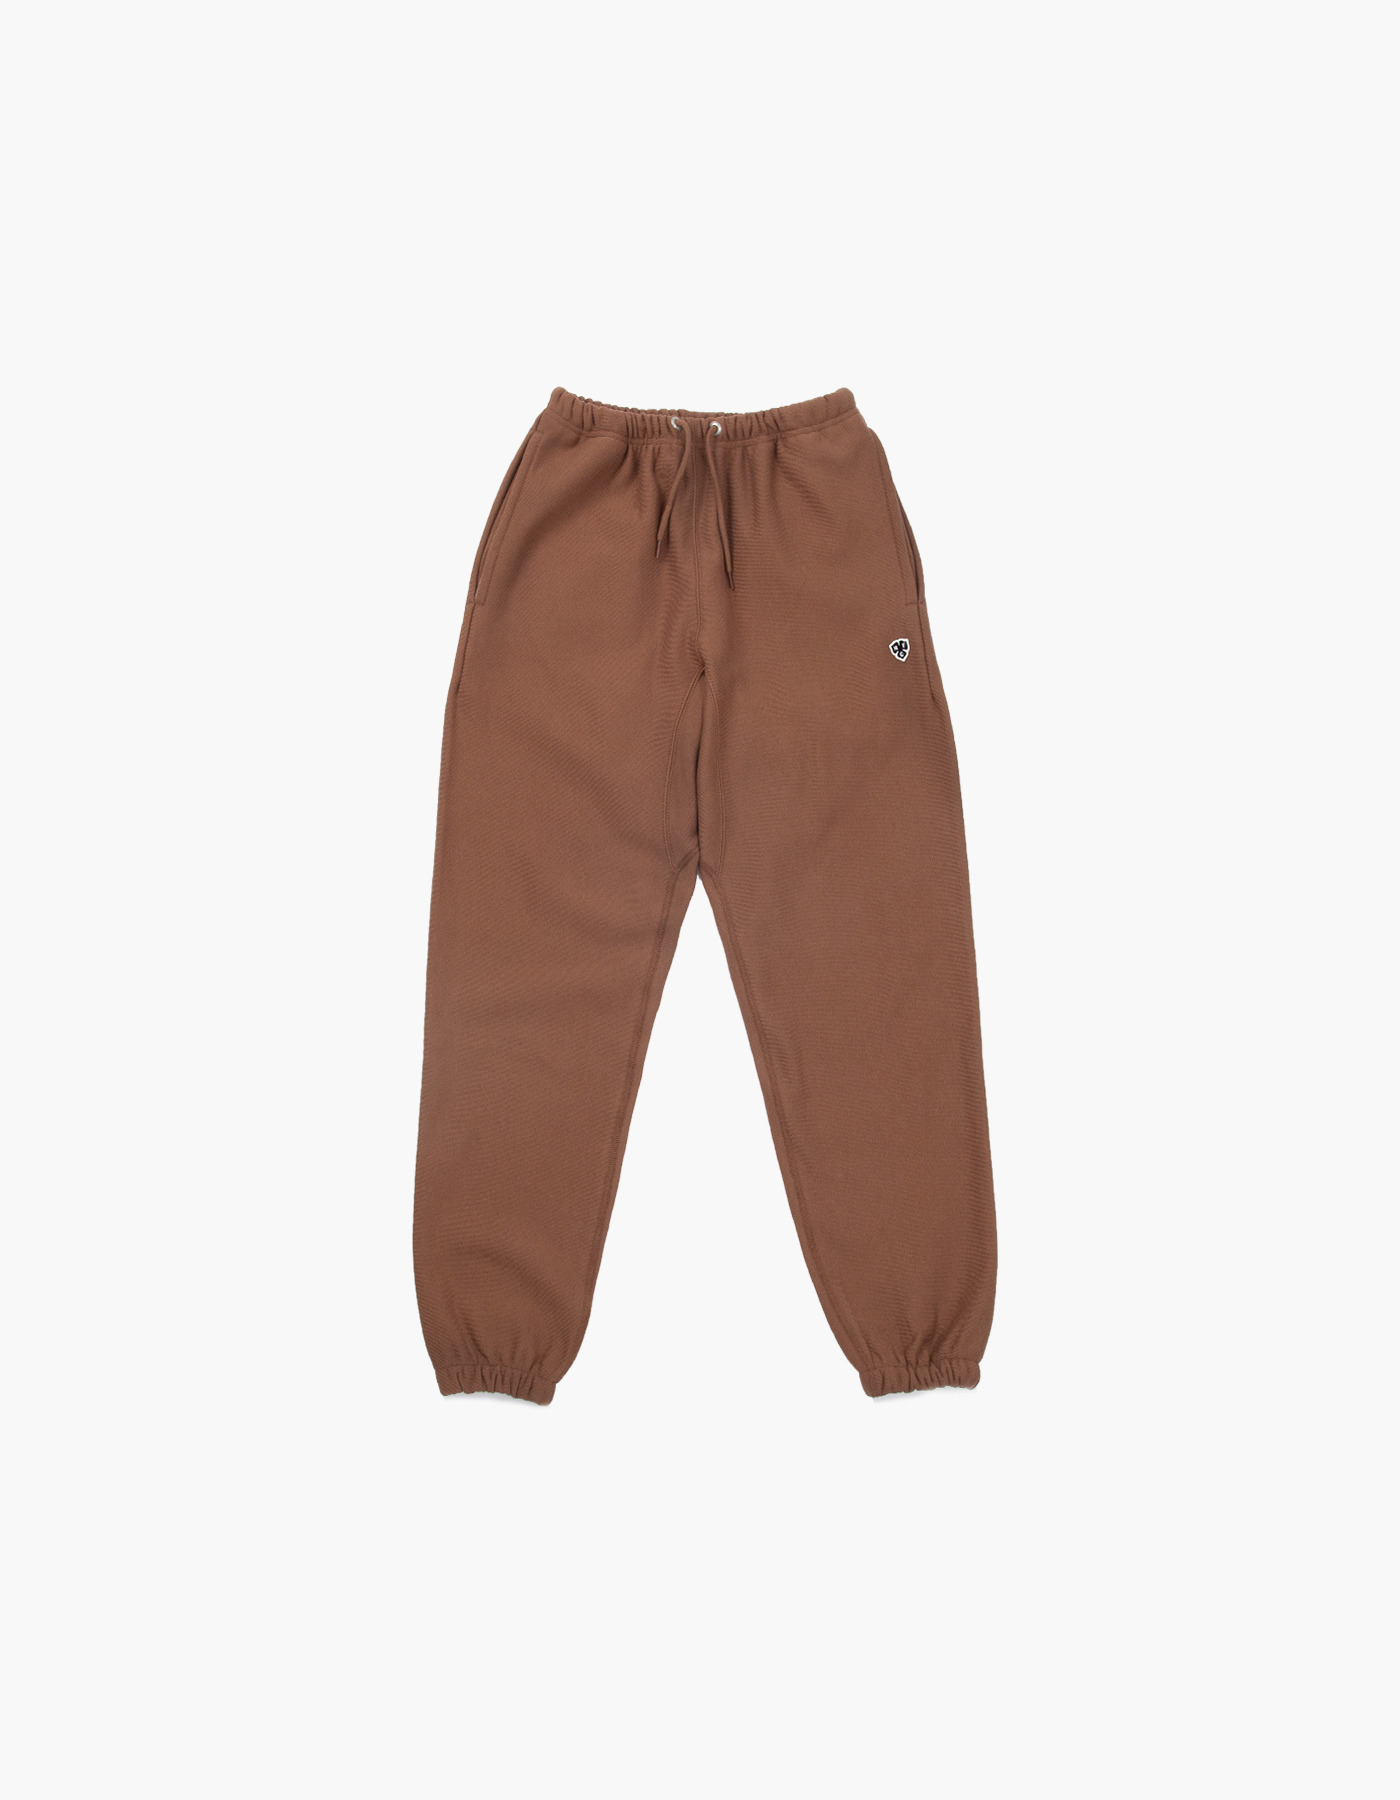 231 HFC SWEATPANTS / BROWN